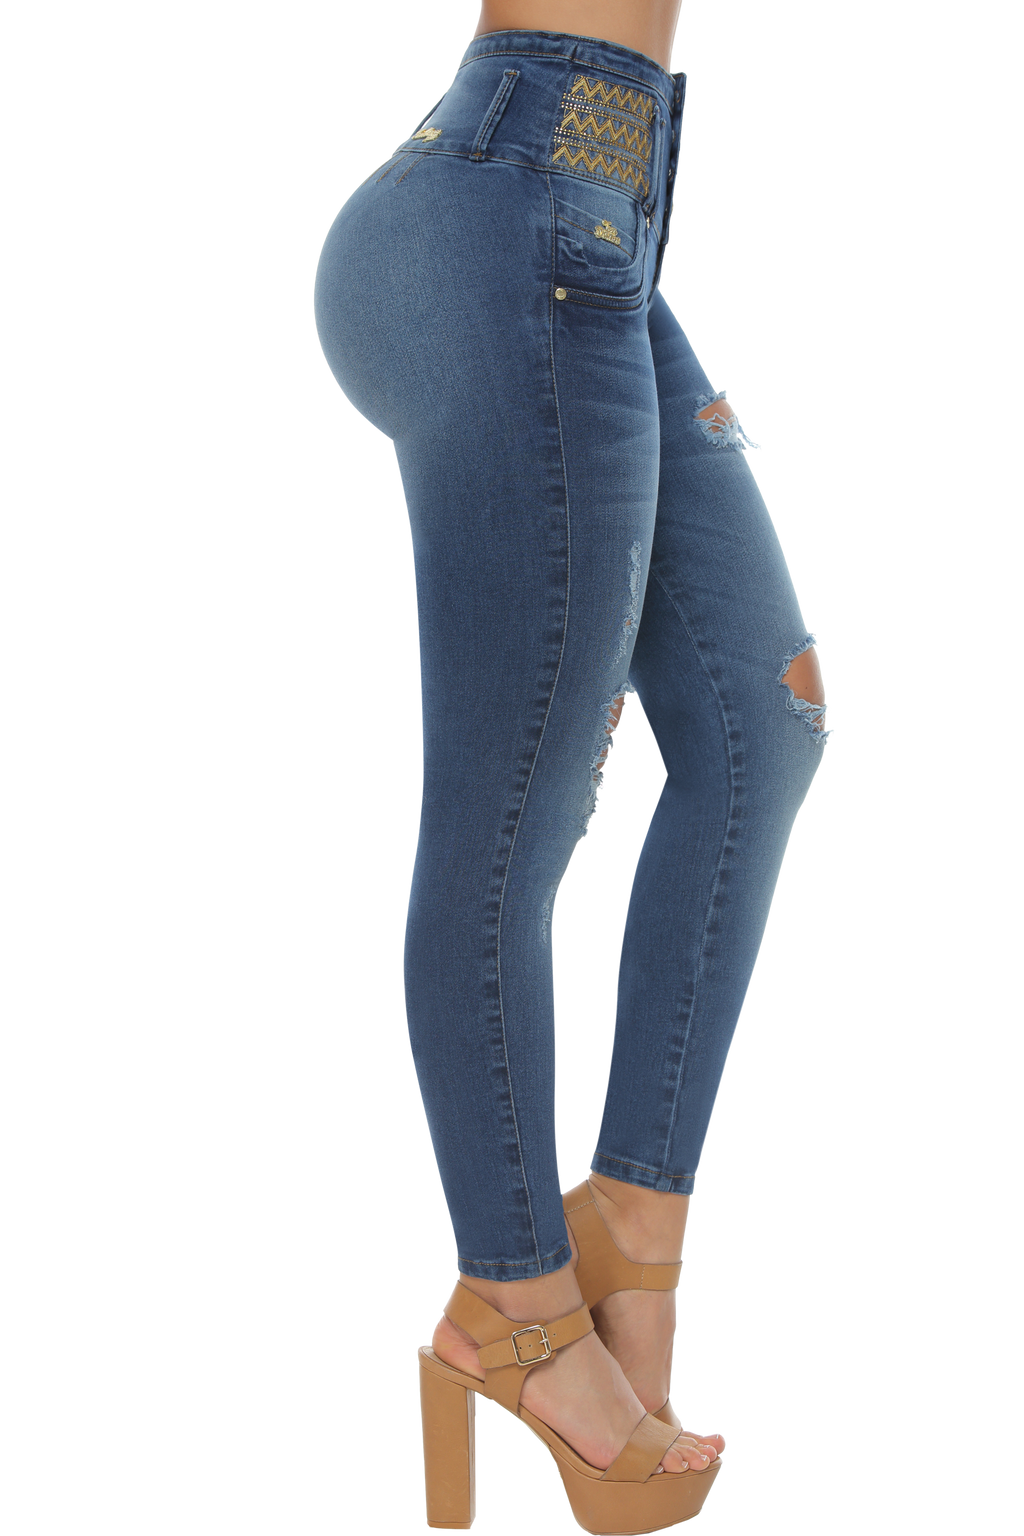 MAINE ab control high rise ripped skinny jeans